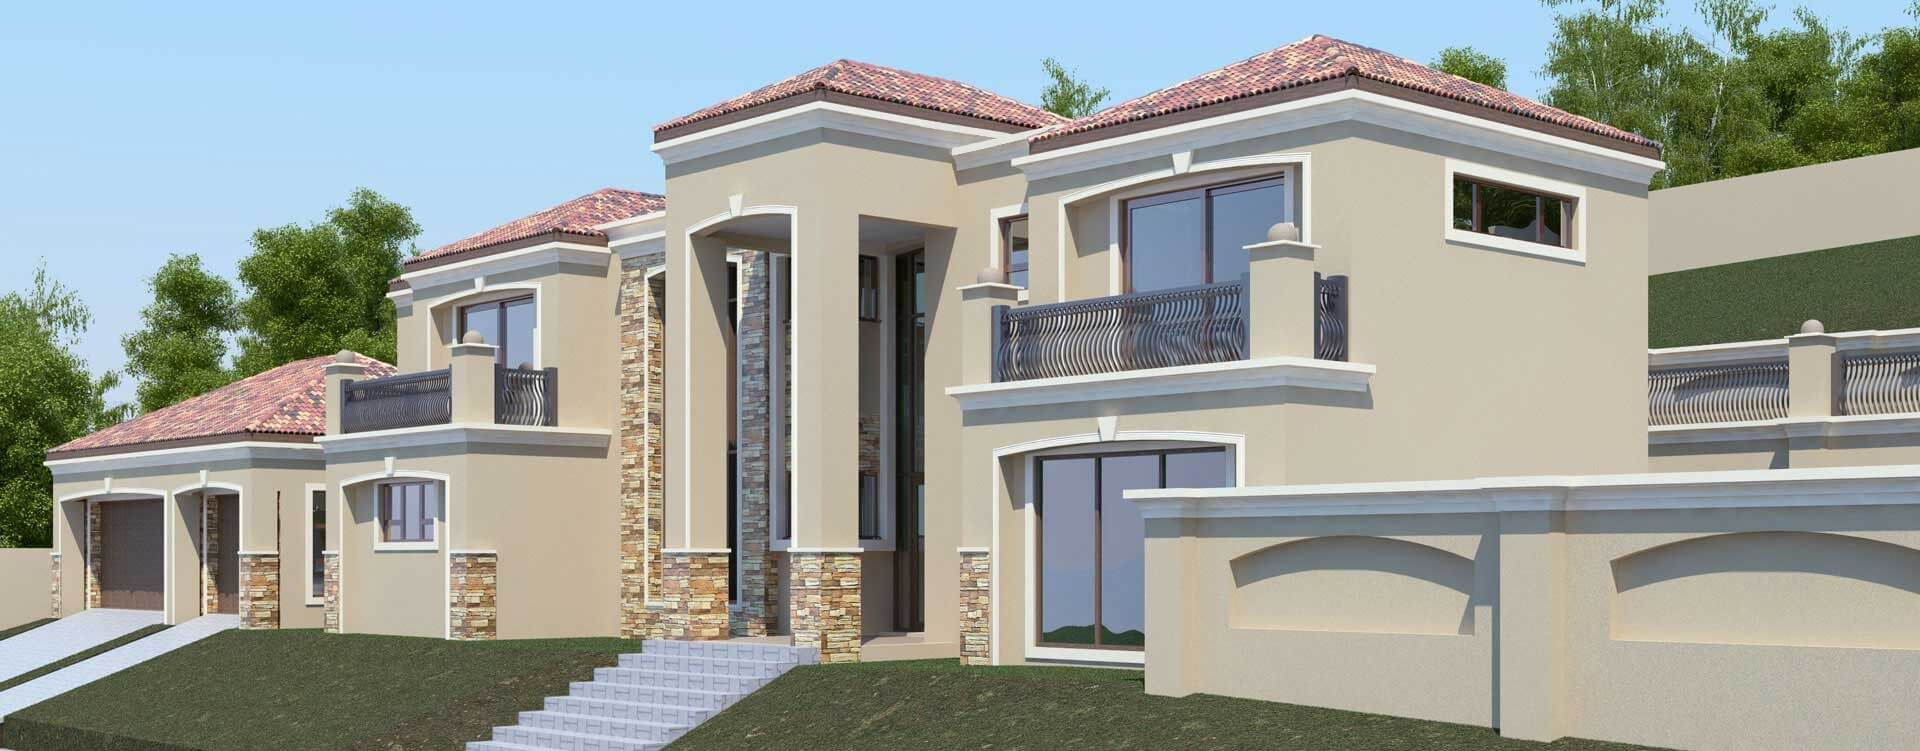 Nethouseplans affordable house plans for Www houseplans